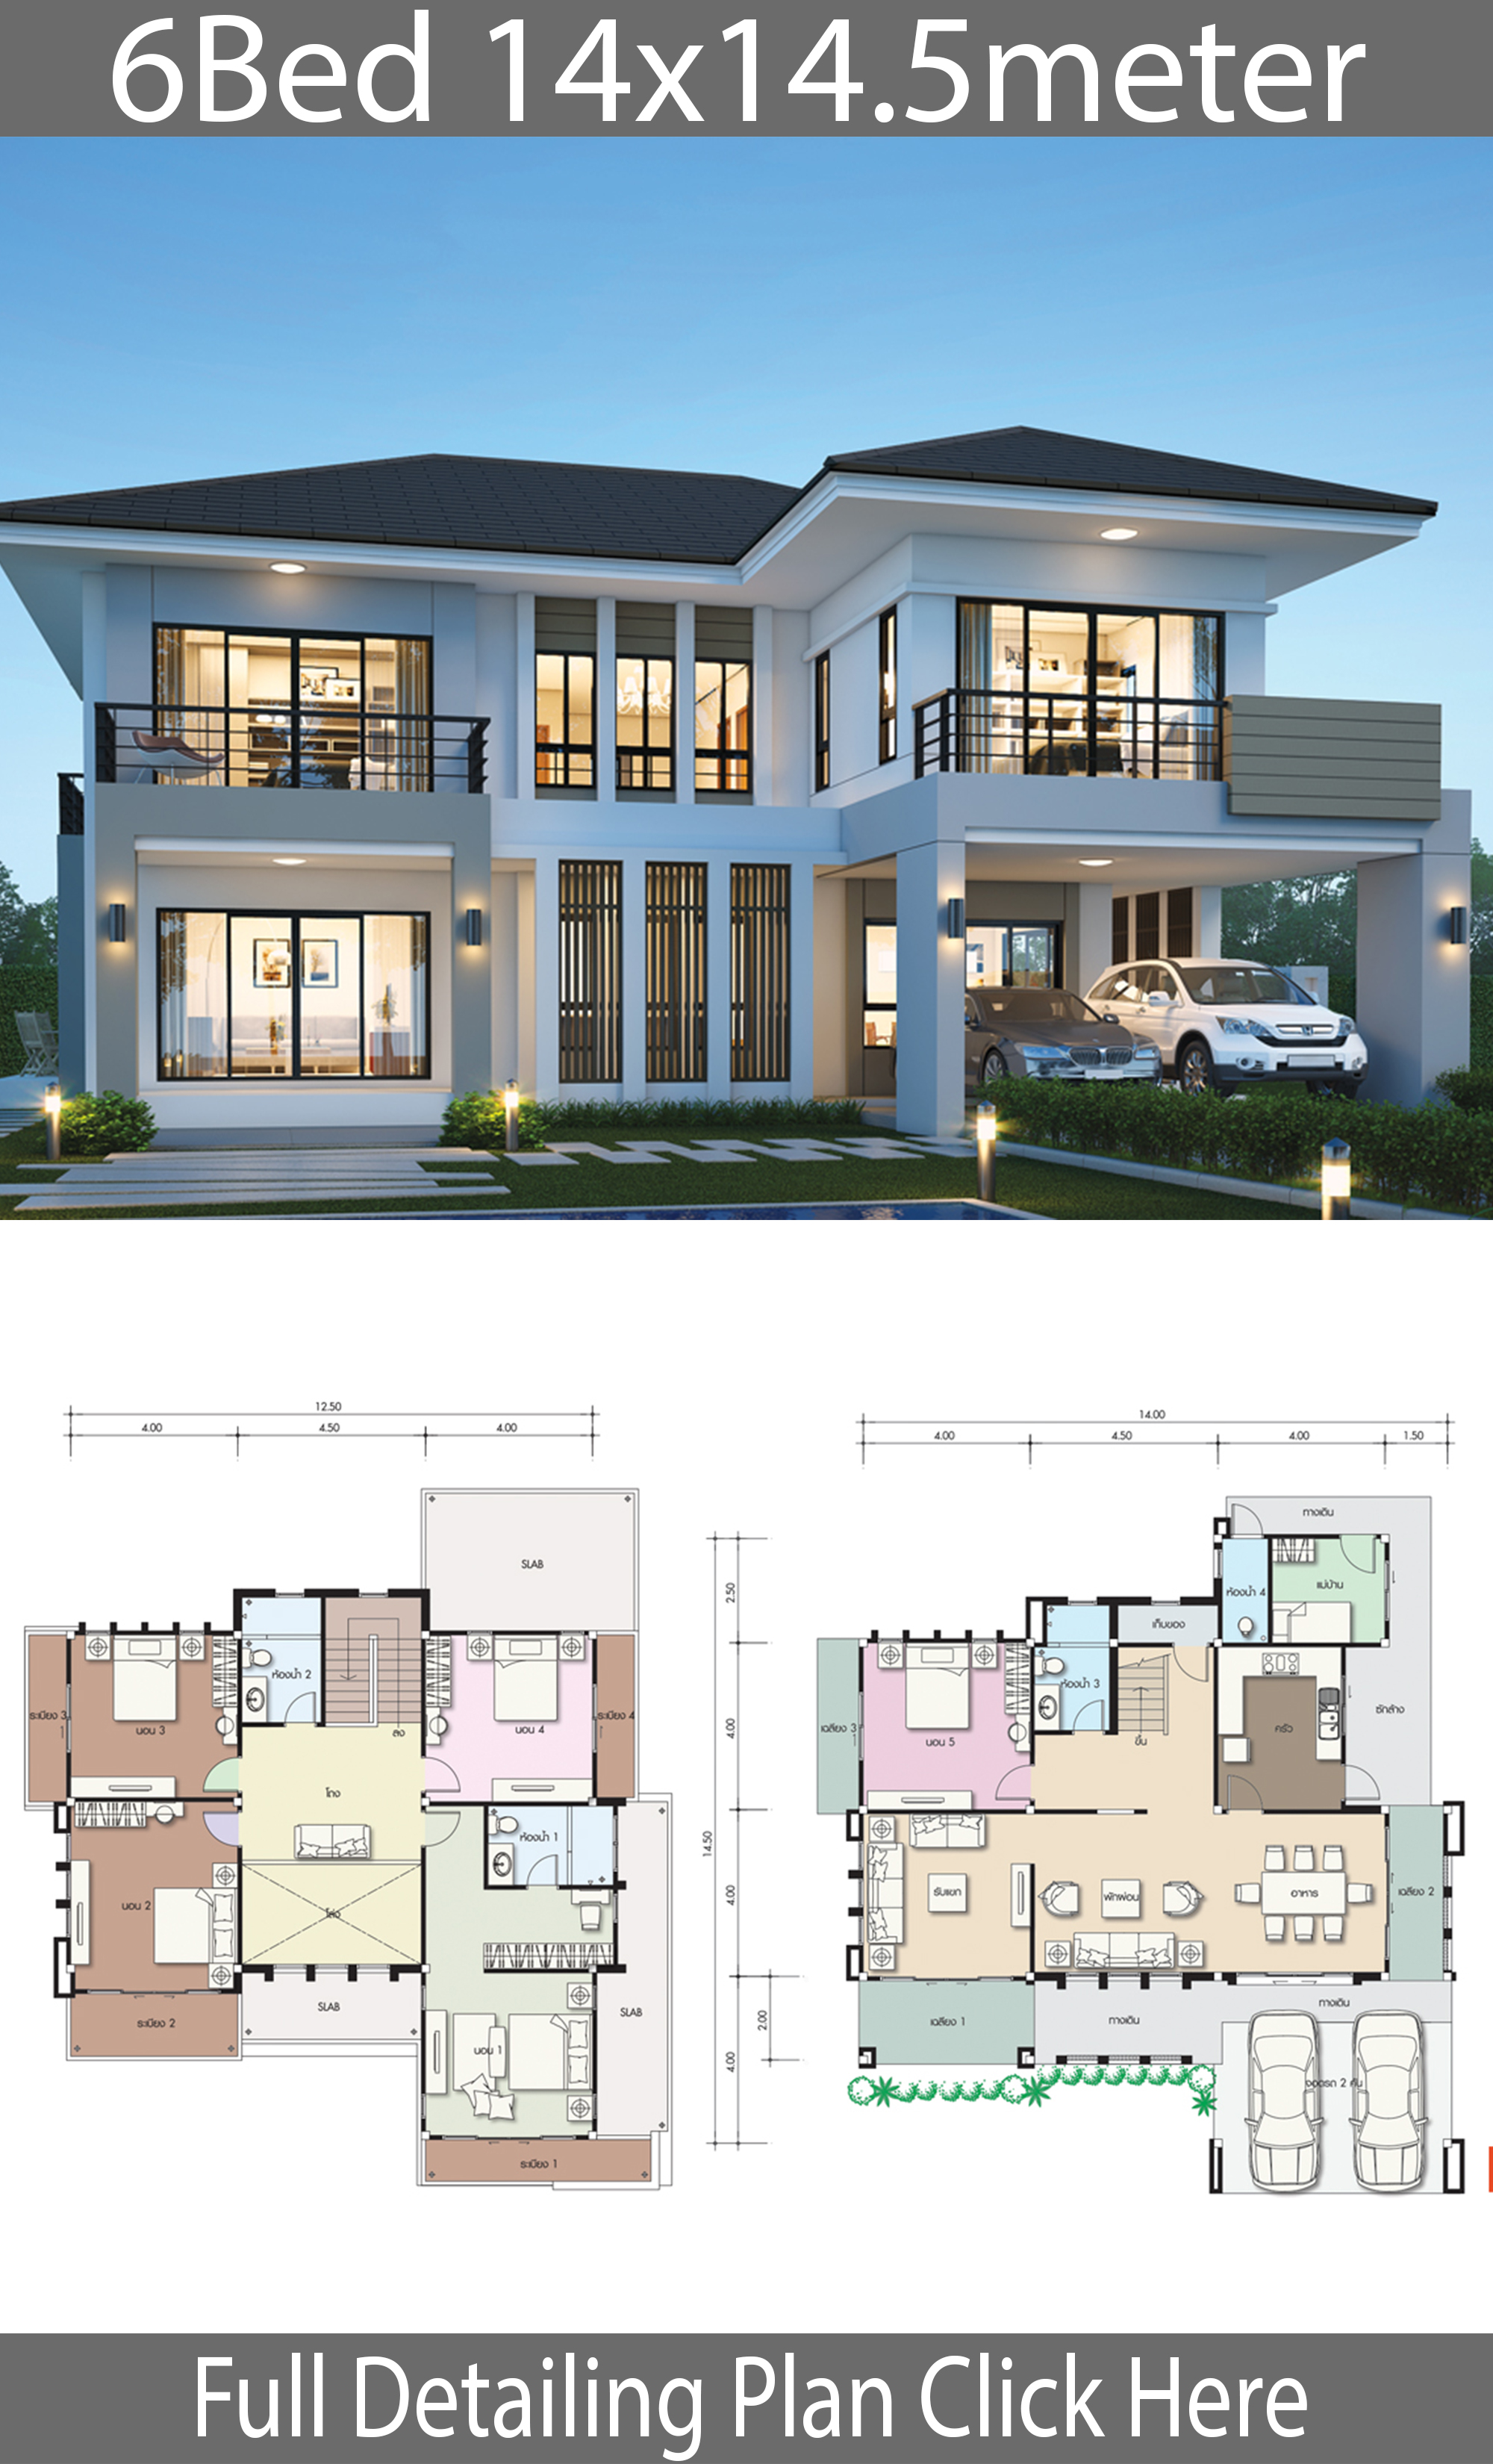 House design plan 14x14.5m with 6 bedrooms - House Plans 3D